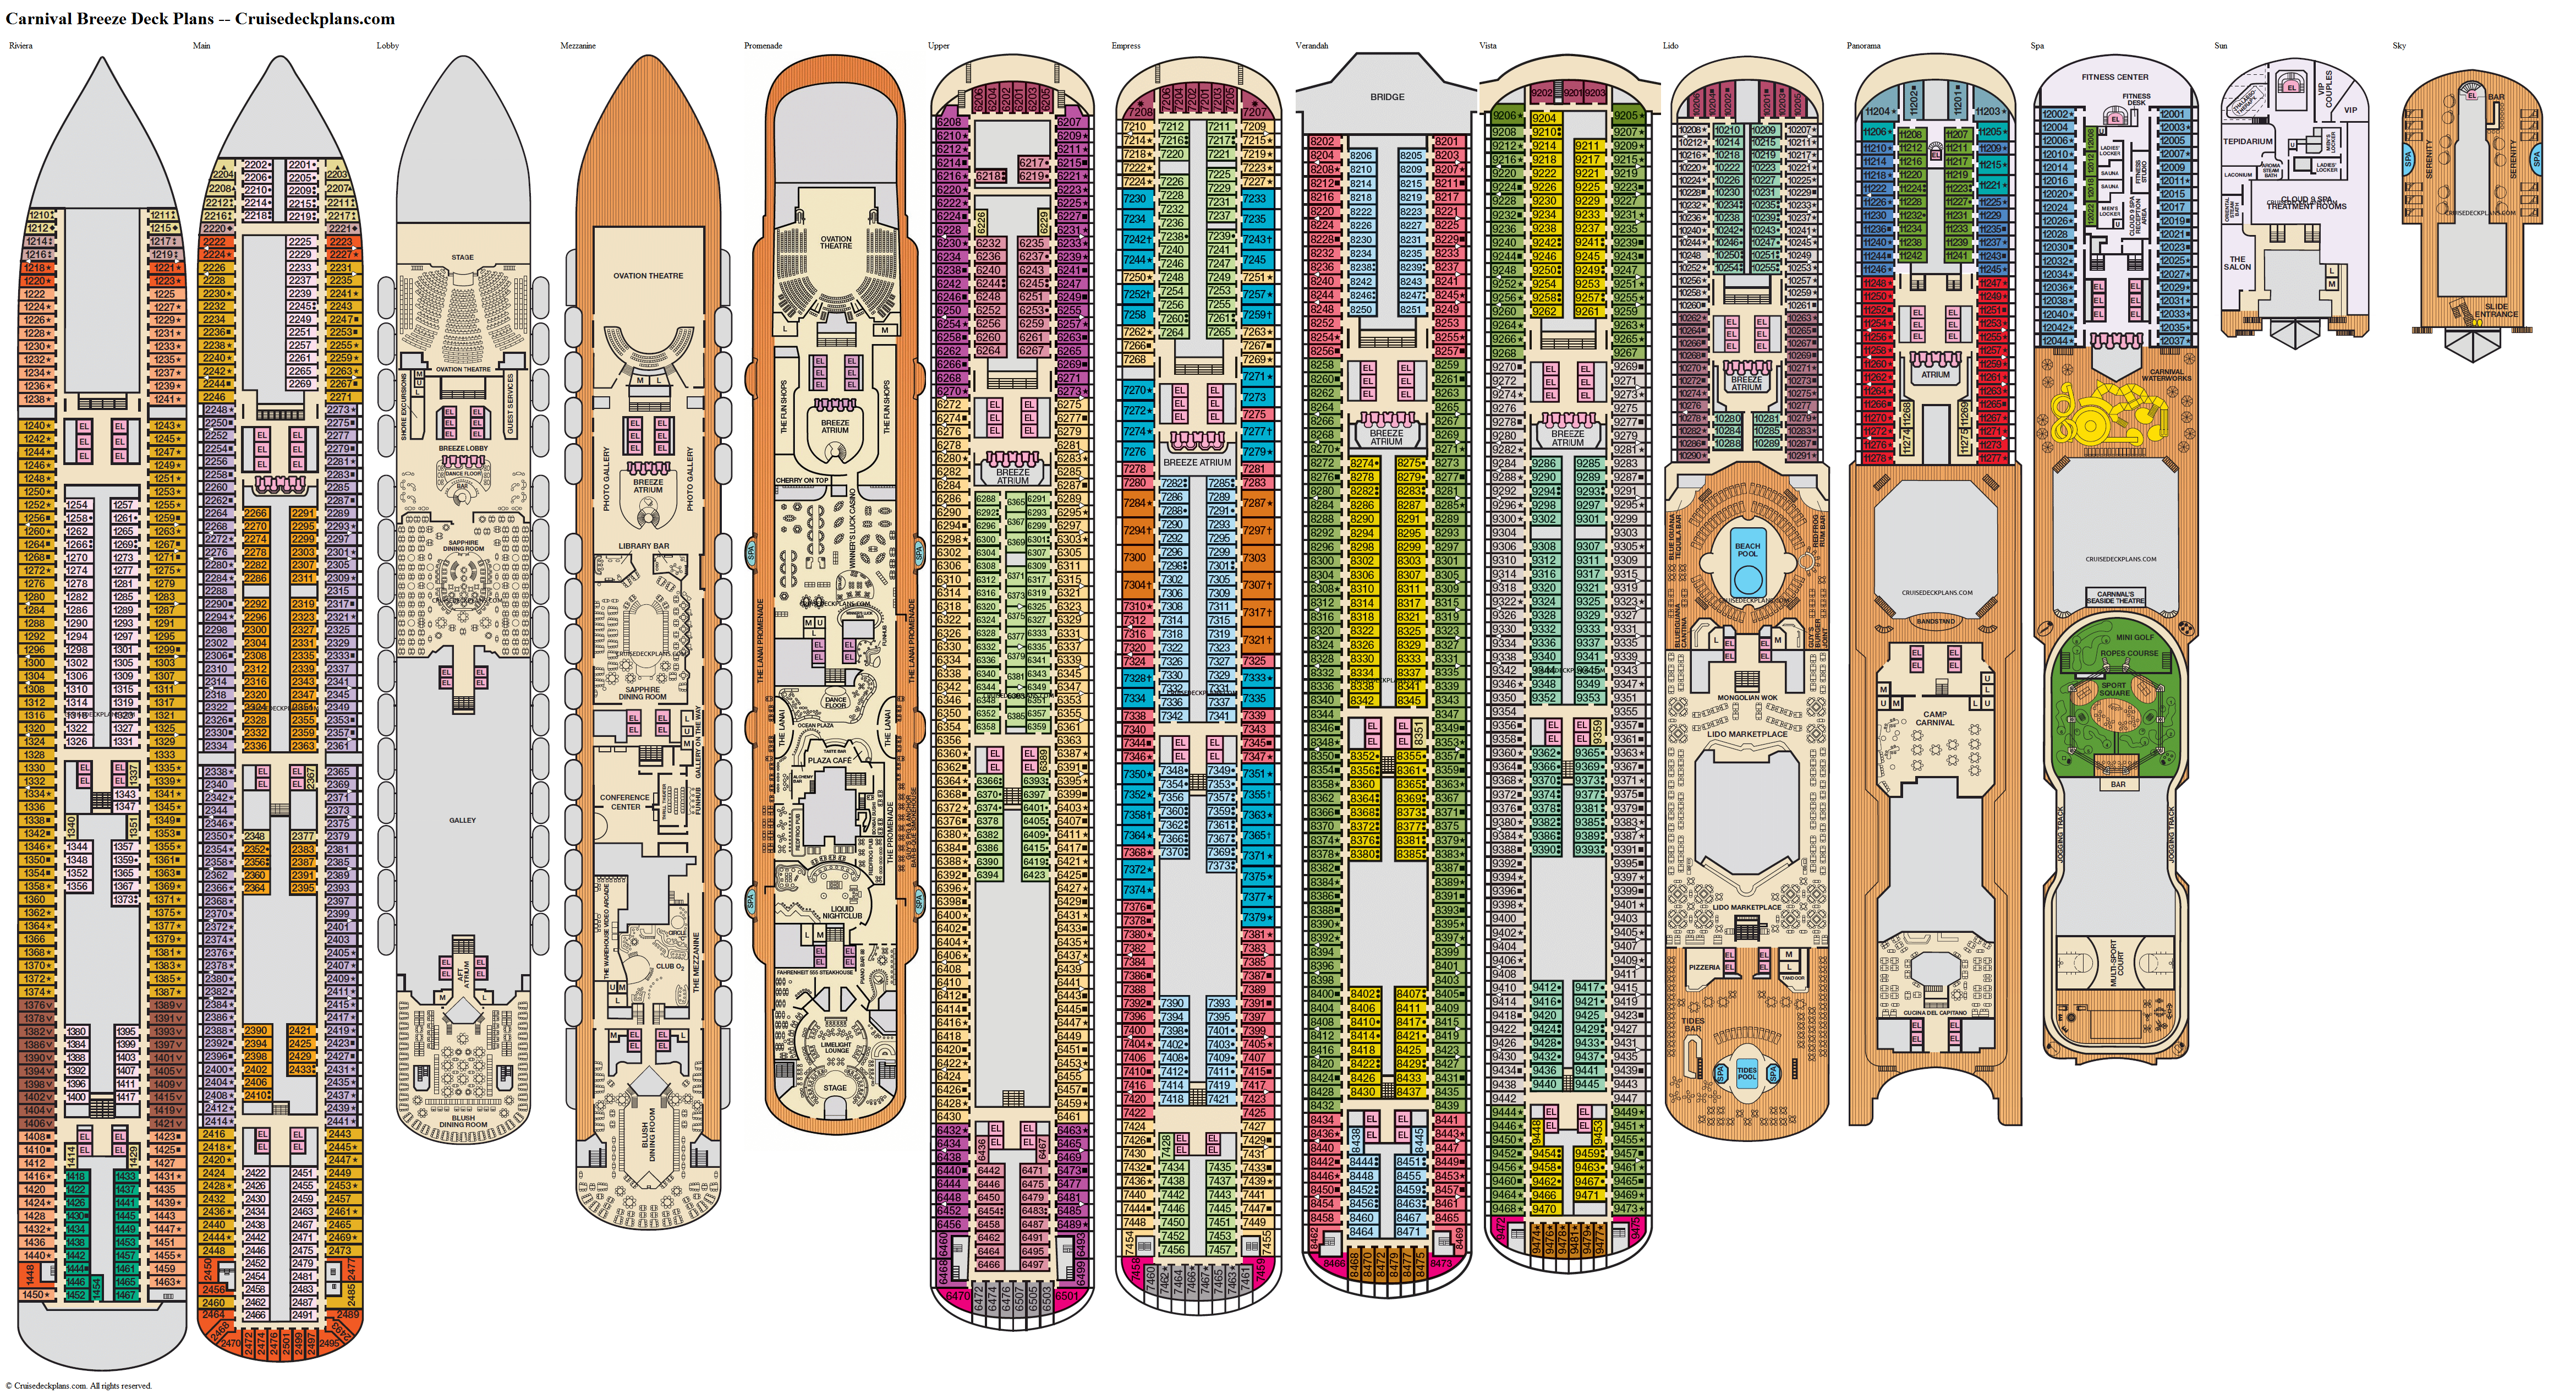 Carnival Breeze deck plans image